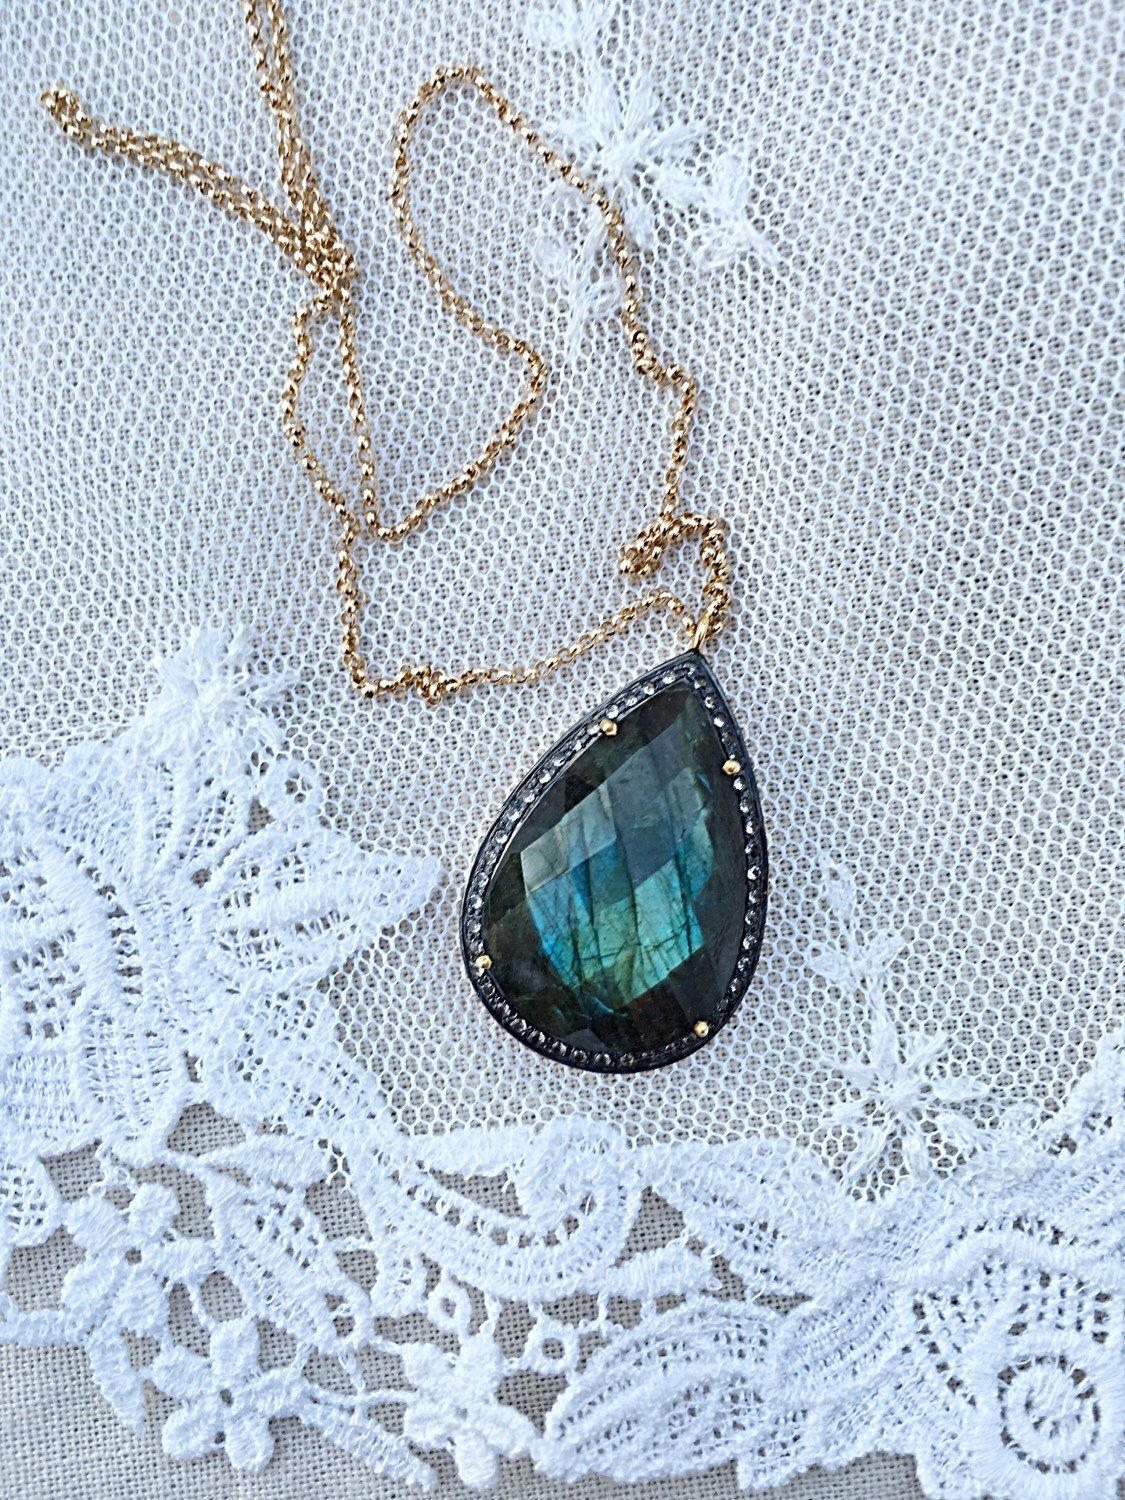 Pear Labradorite, Pave White Topaz, Deep Teal and Blue, Gold Fill Chain, Gorgeous Color, Cut. For You, For Her! One only! by ShalomJewelry on Etsy https://www.etsy.com/listing/268471474/pear-labradorite-pave-white-topaz-deep